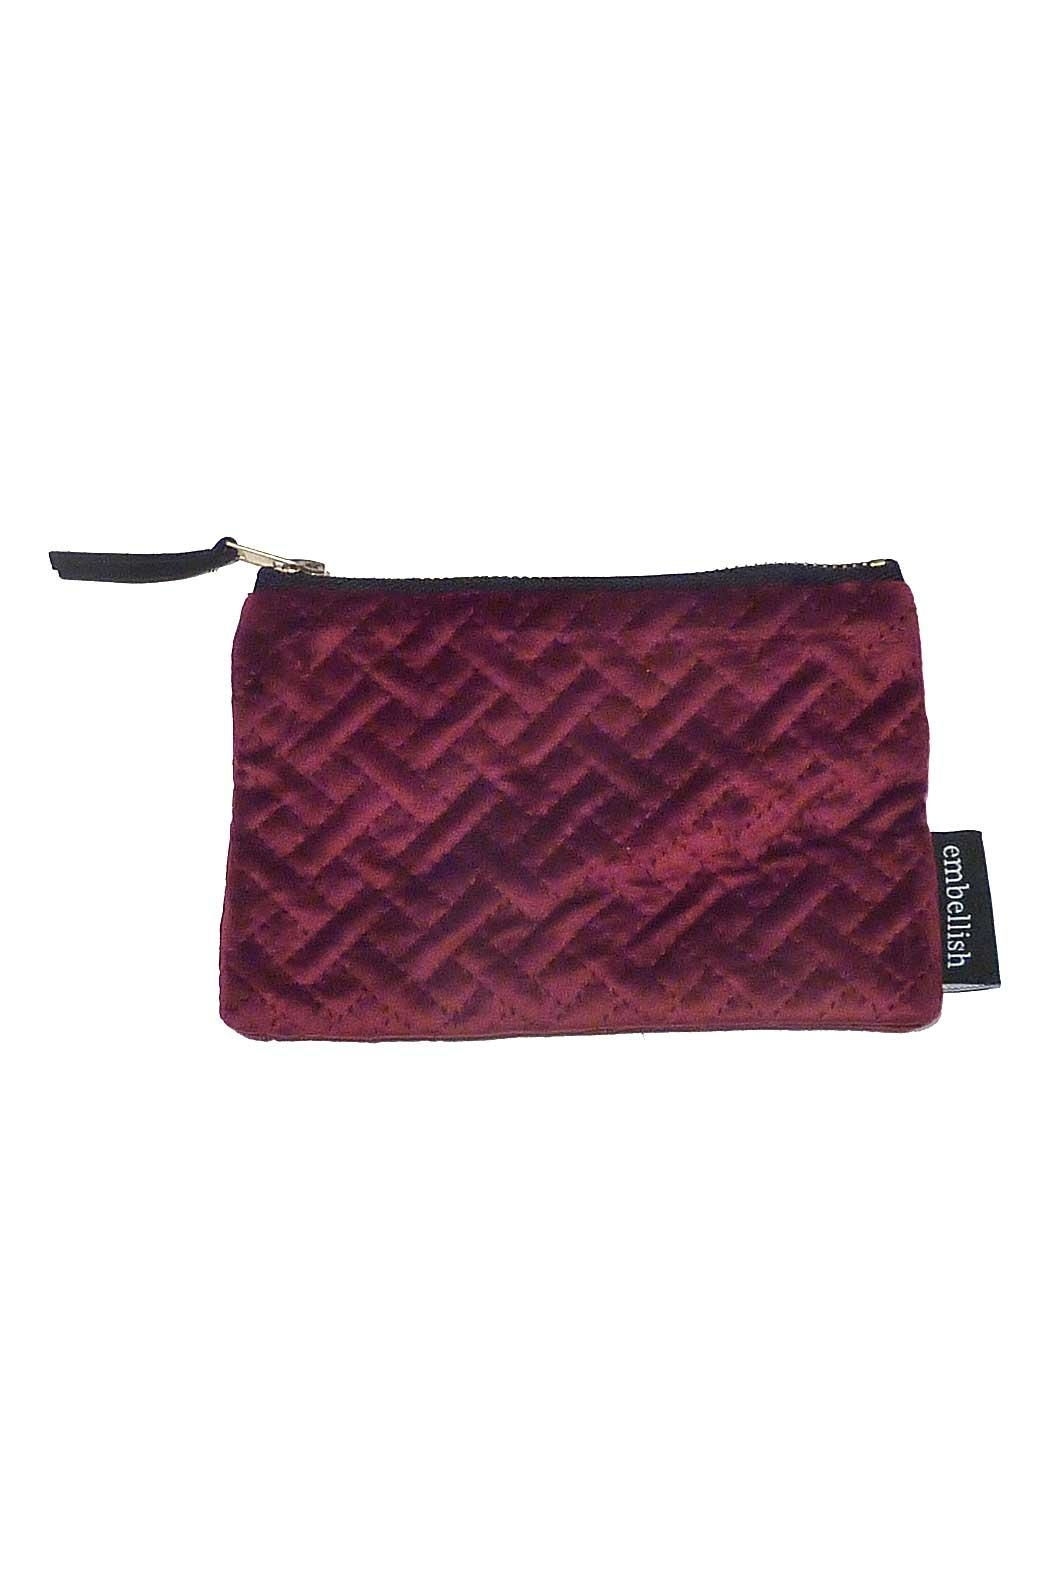 Creative Co-Op Small Velvet Pouch - Main Image